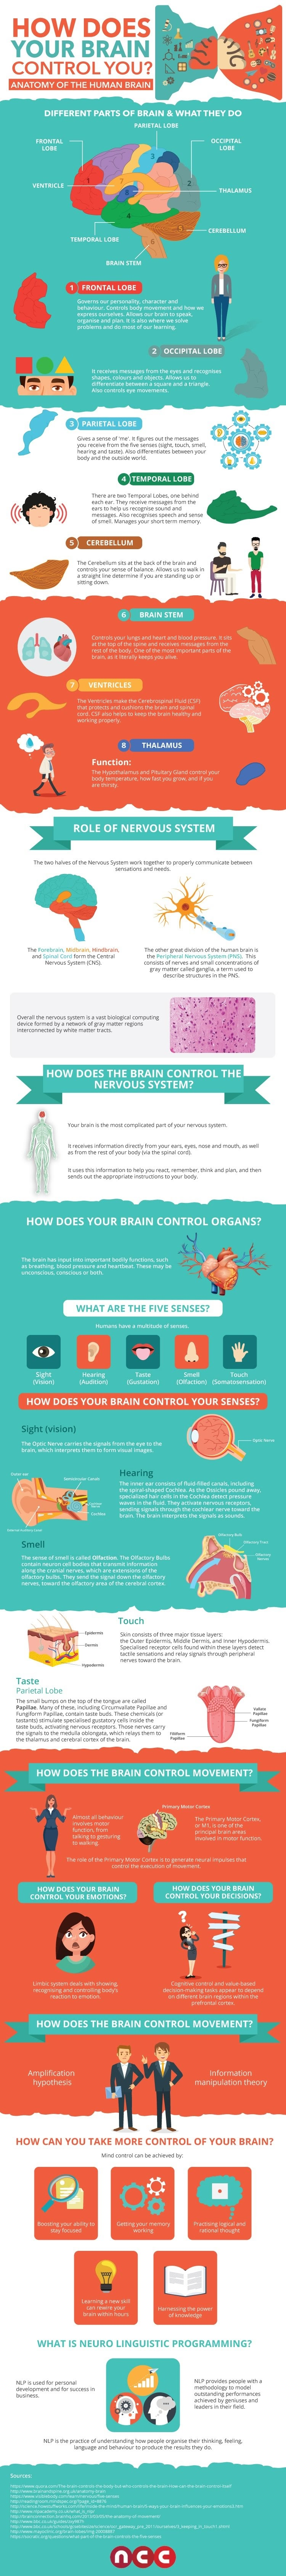 How Does Your Brain Control You? - #Infographic